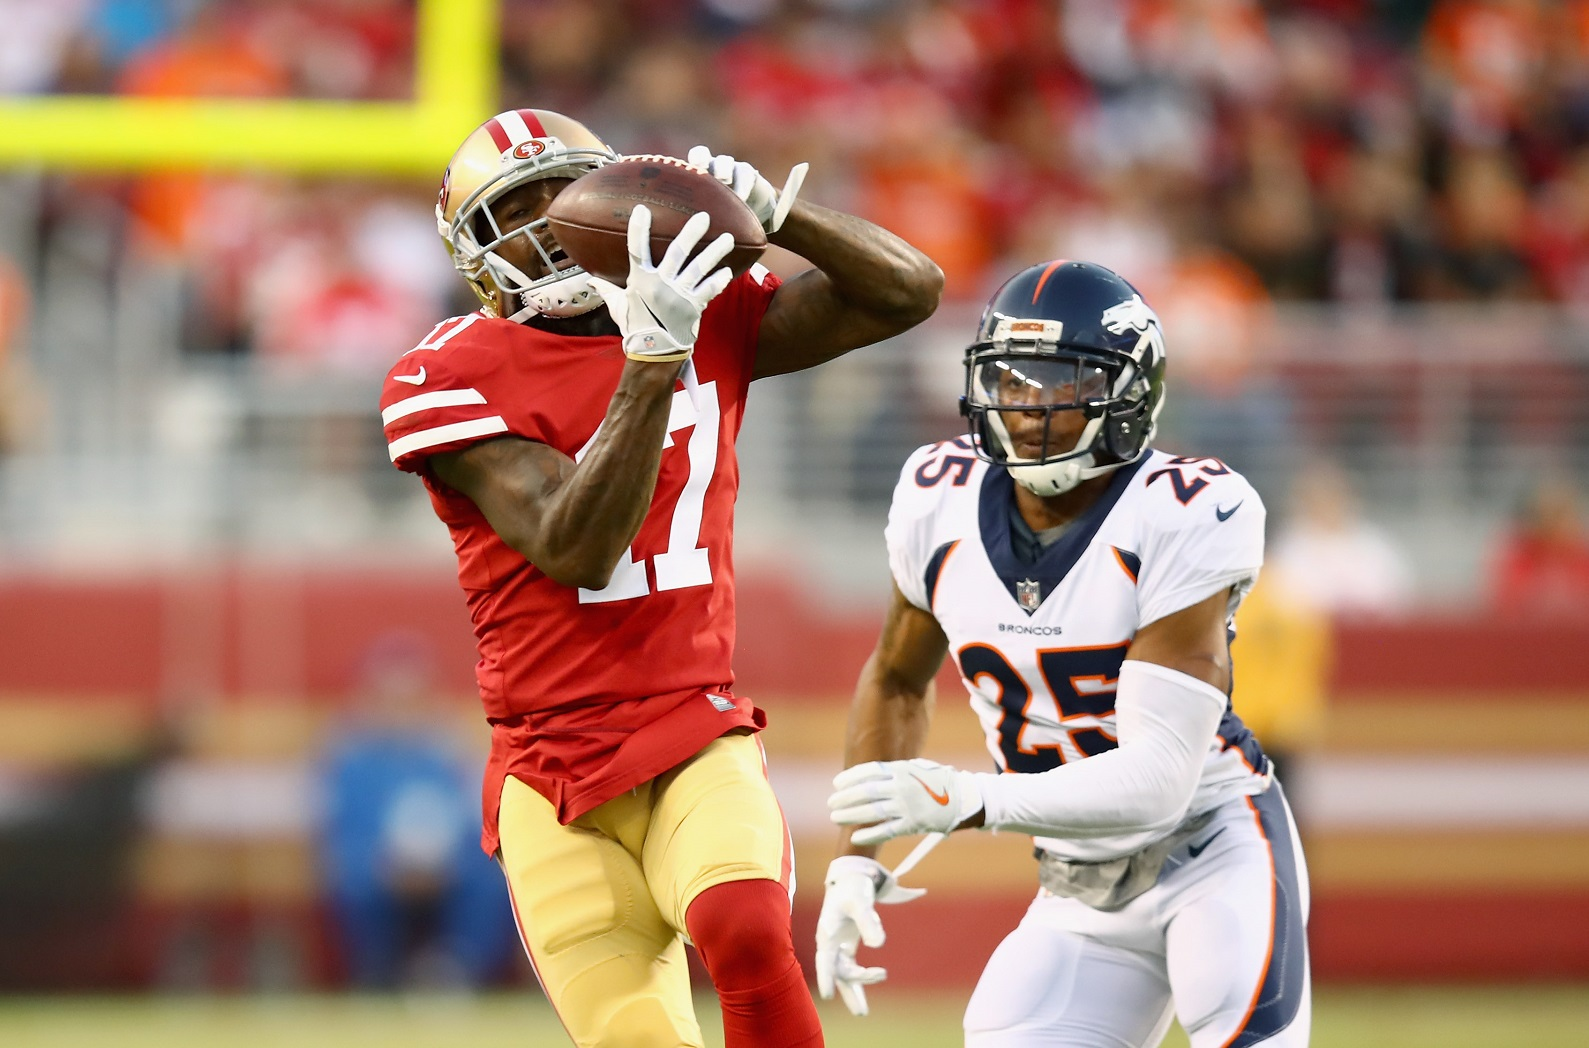 Jeremy Kerley, Jets Reportedly Agree to Contract After 1 Season with 49ers